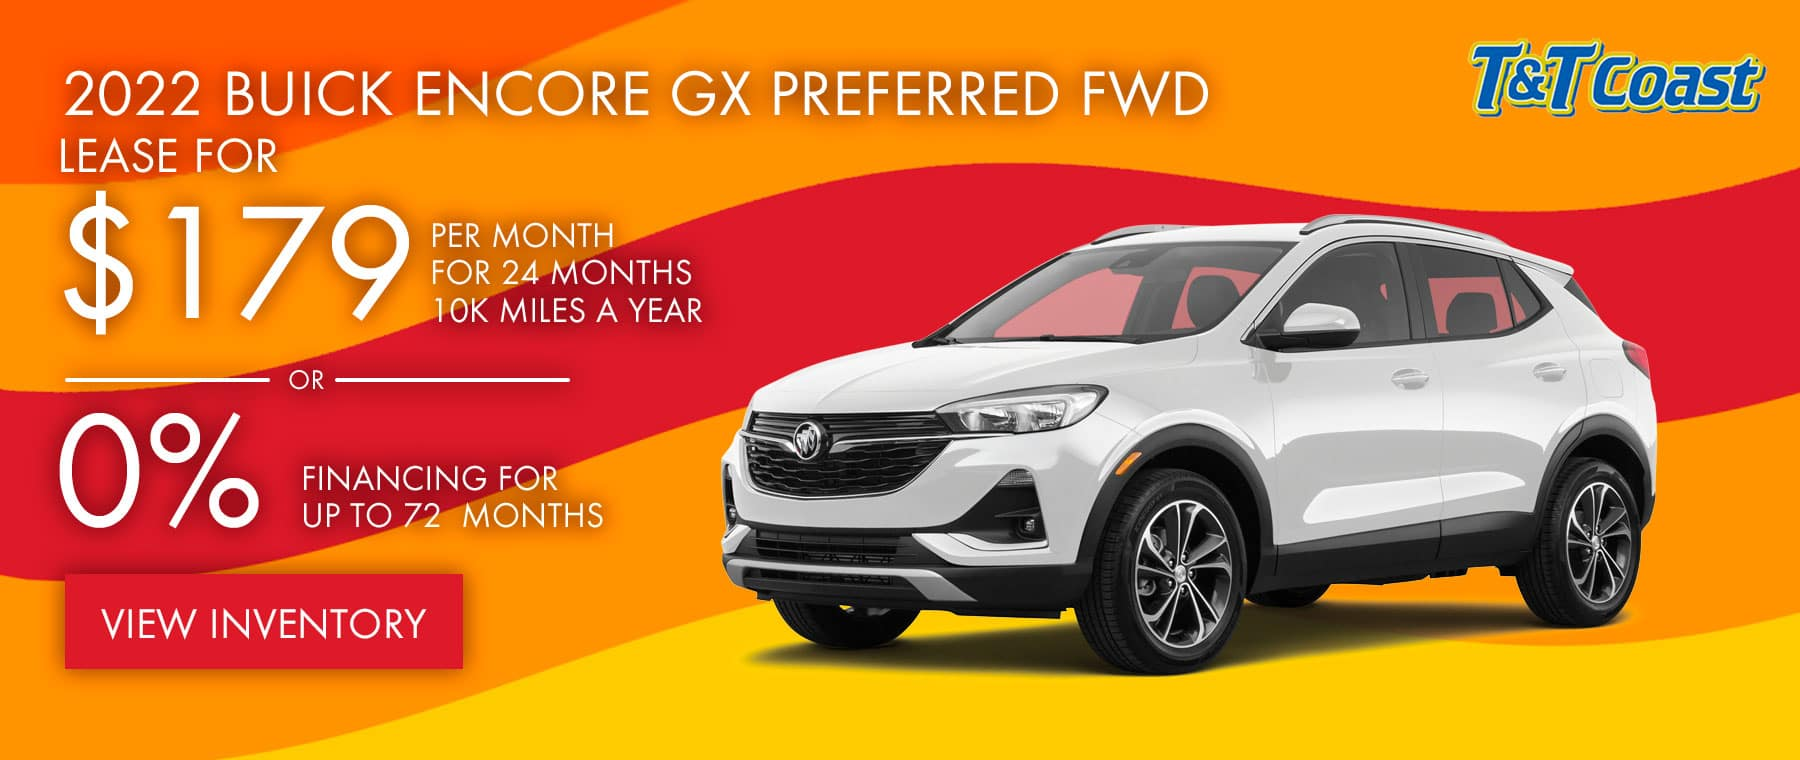 2022 BUICK ENCORE GX PREFERRED FWD $179 a month for 24 months OR 0% financing for up to 72 months